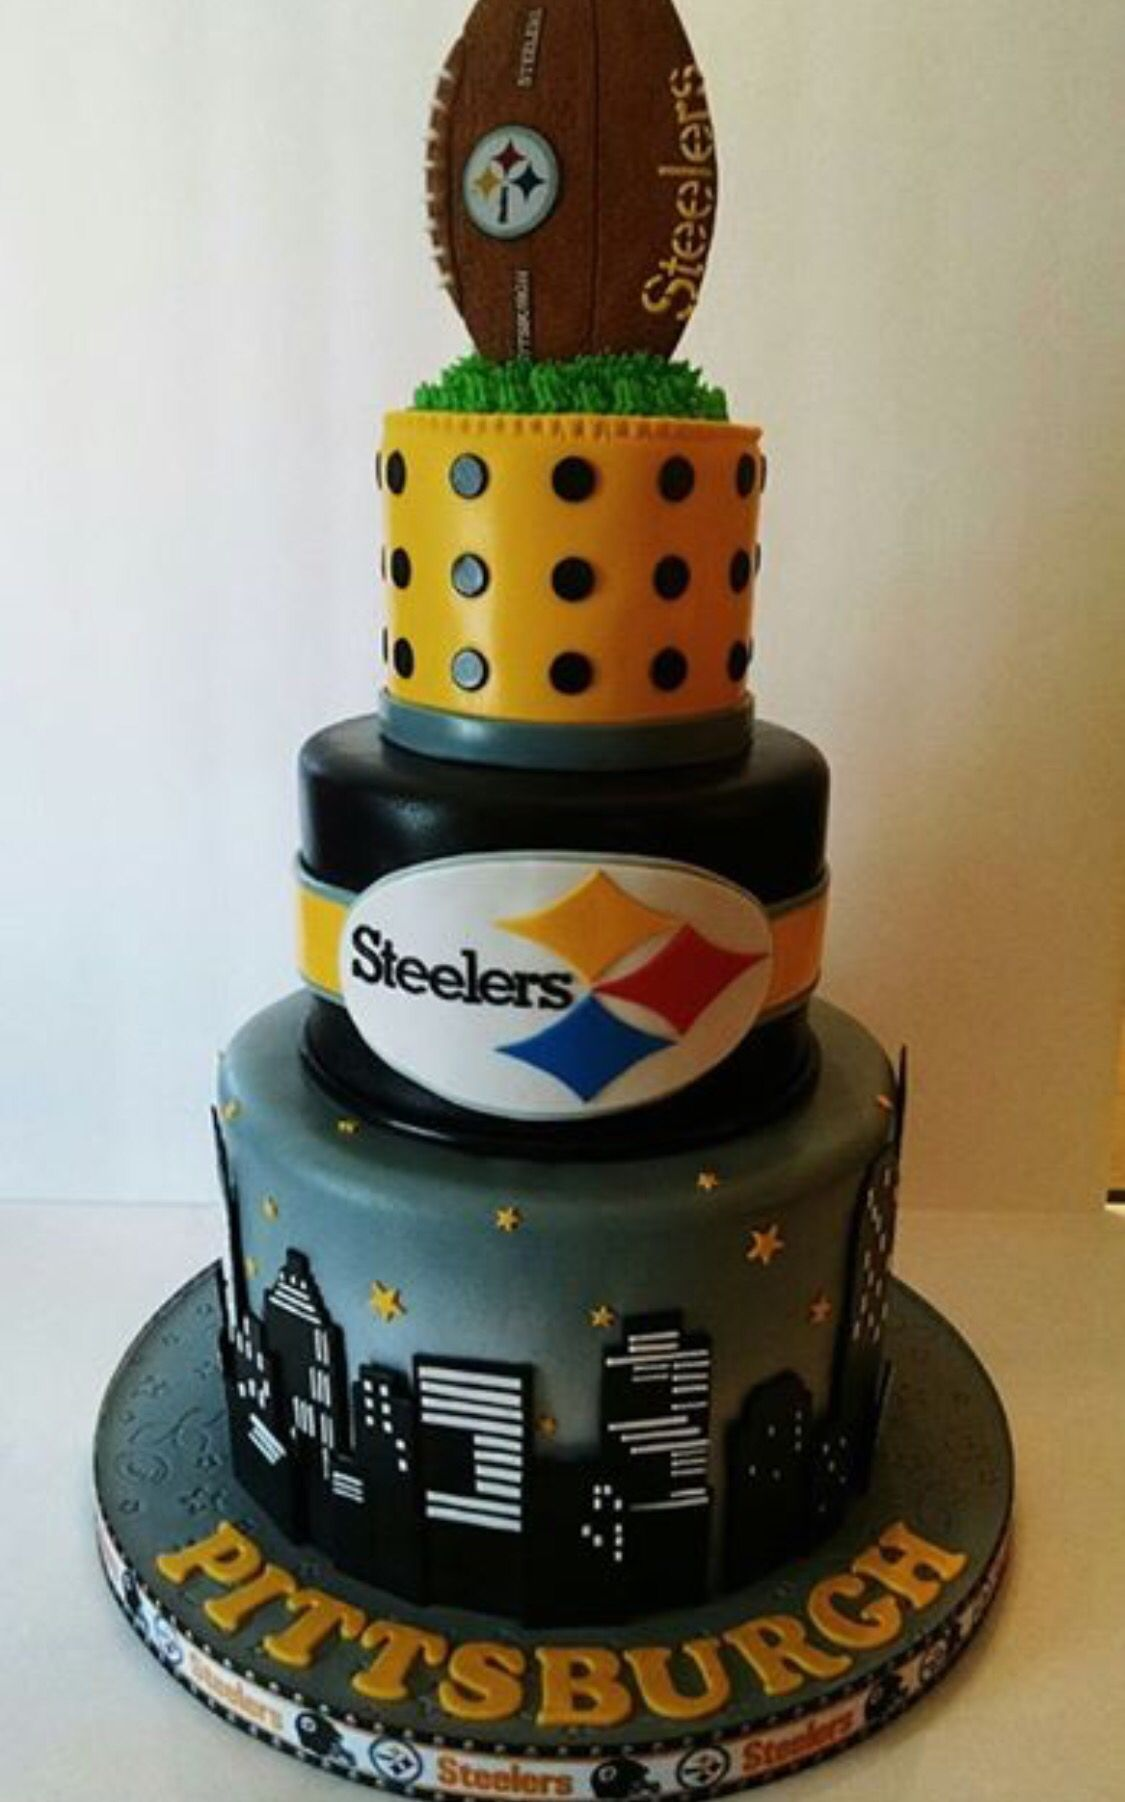 Astonishing Steelers Cake Football Birthday Cake Steelers Superbowl Party Funny Birthday Cards Online Aeocydamsfinfo